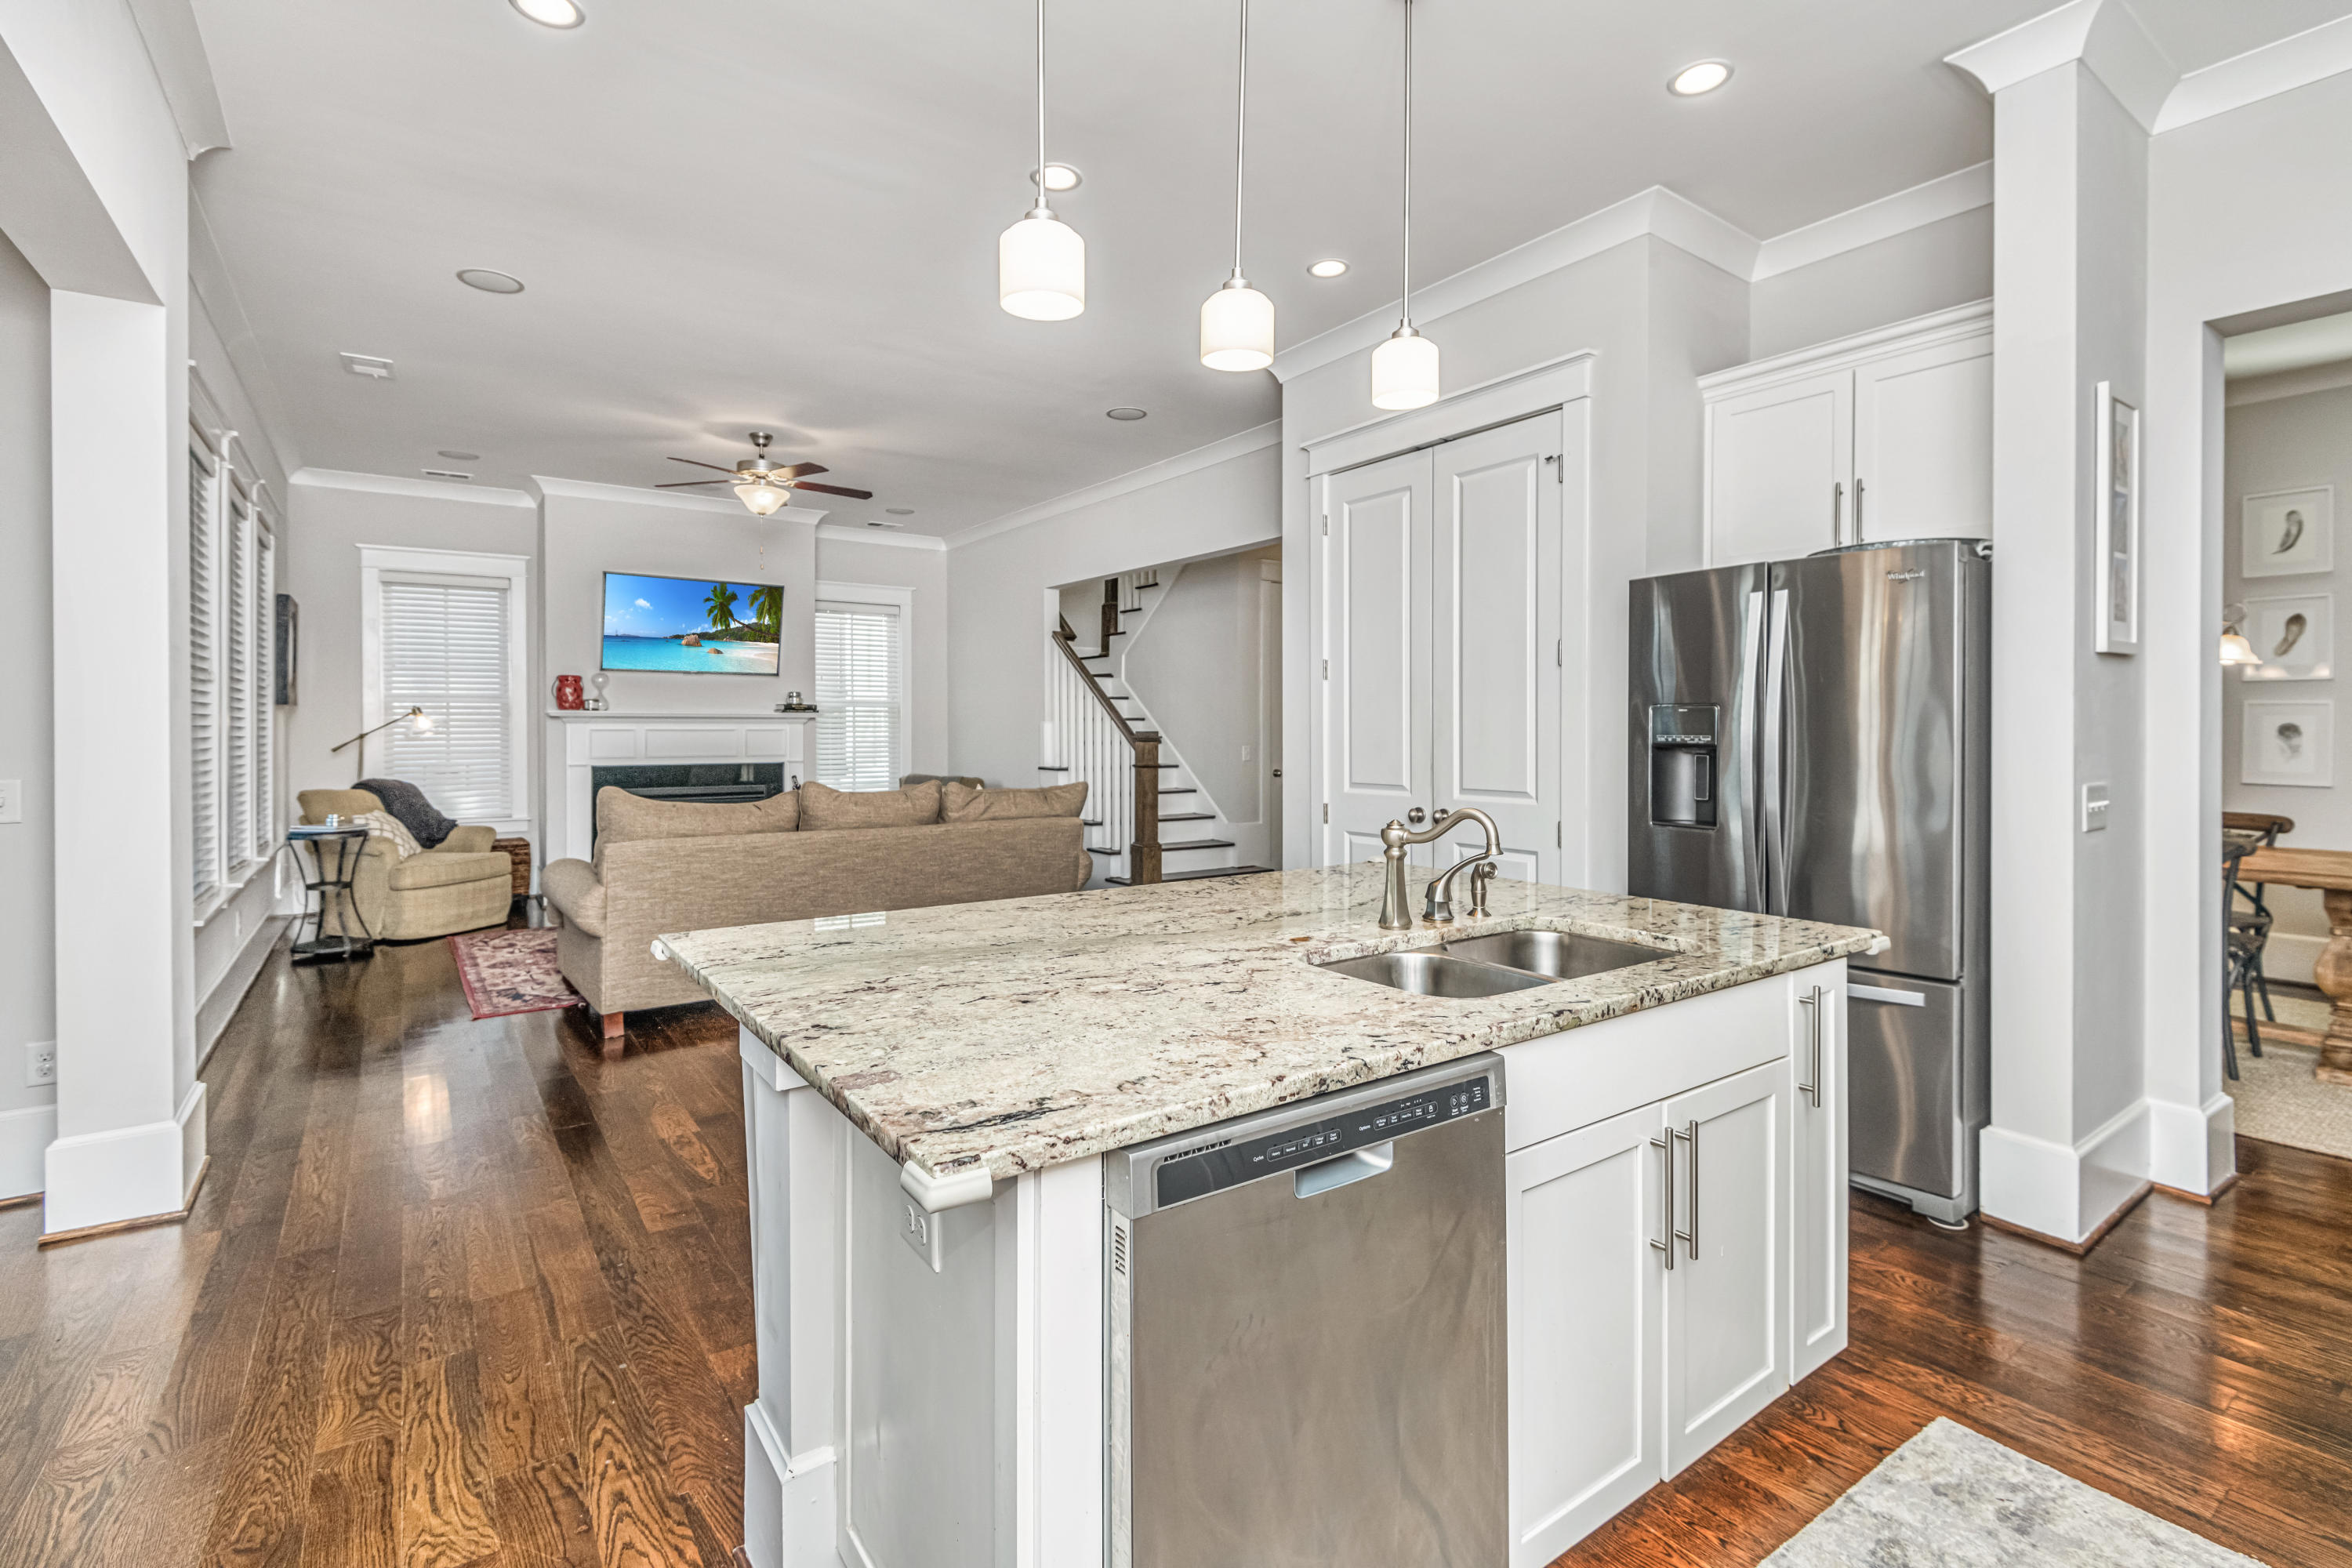 Watermark Homes For Sale - 1445 Lettered Olive, Mount Pleasant, SC - 48